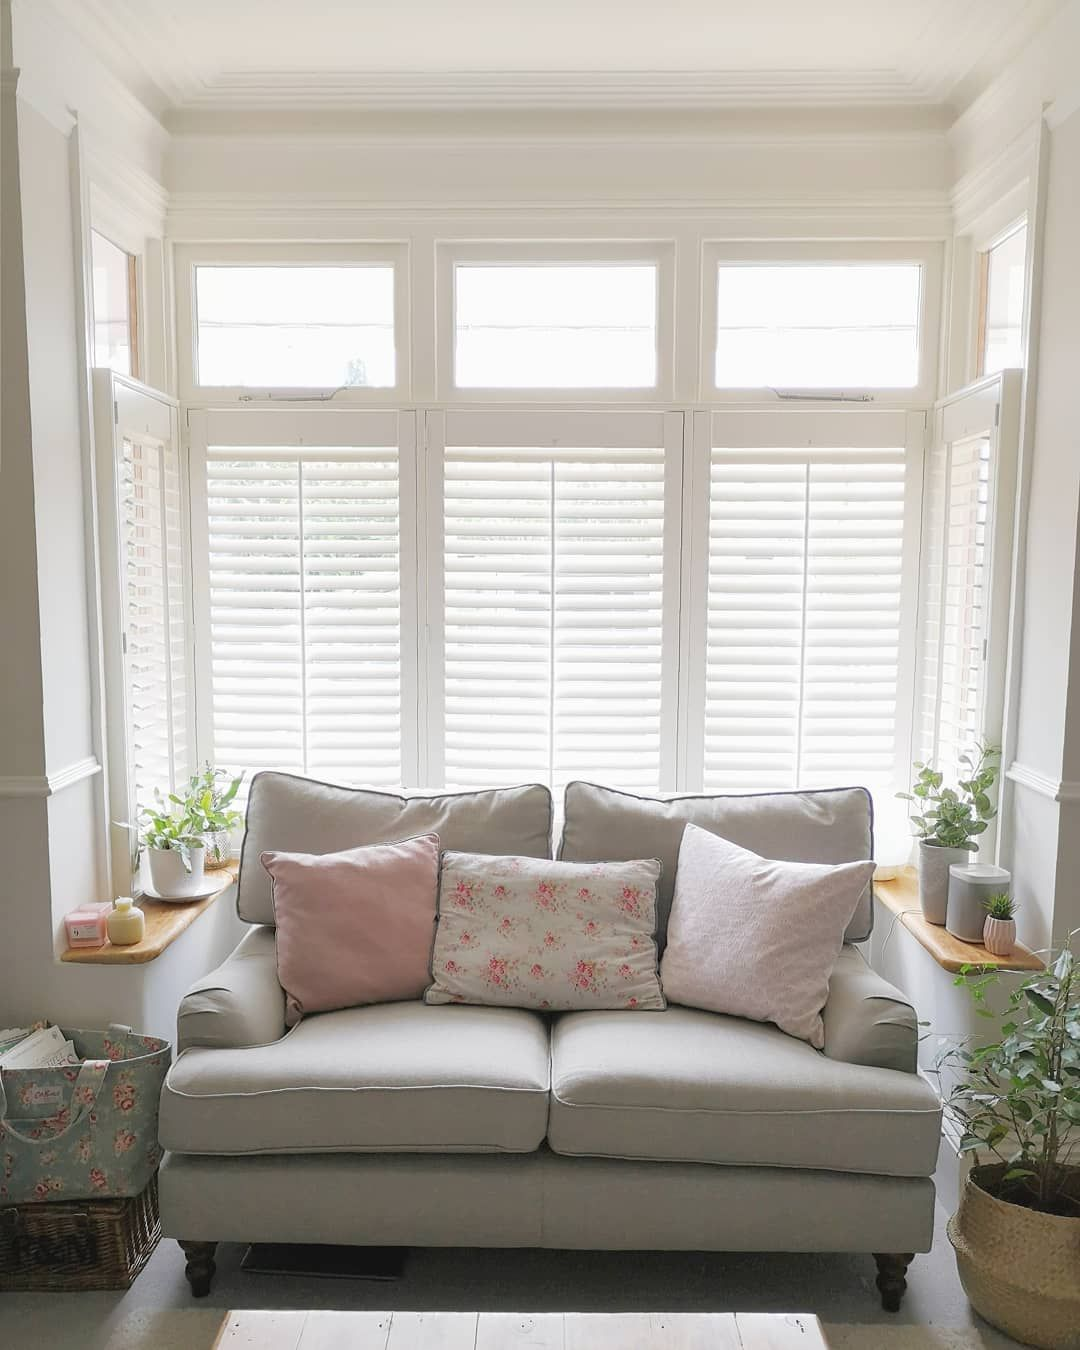 Large bay window with cafe style shutters in an Edwardian ...